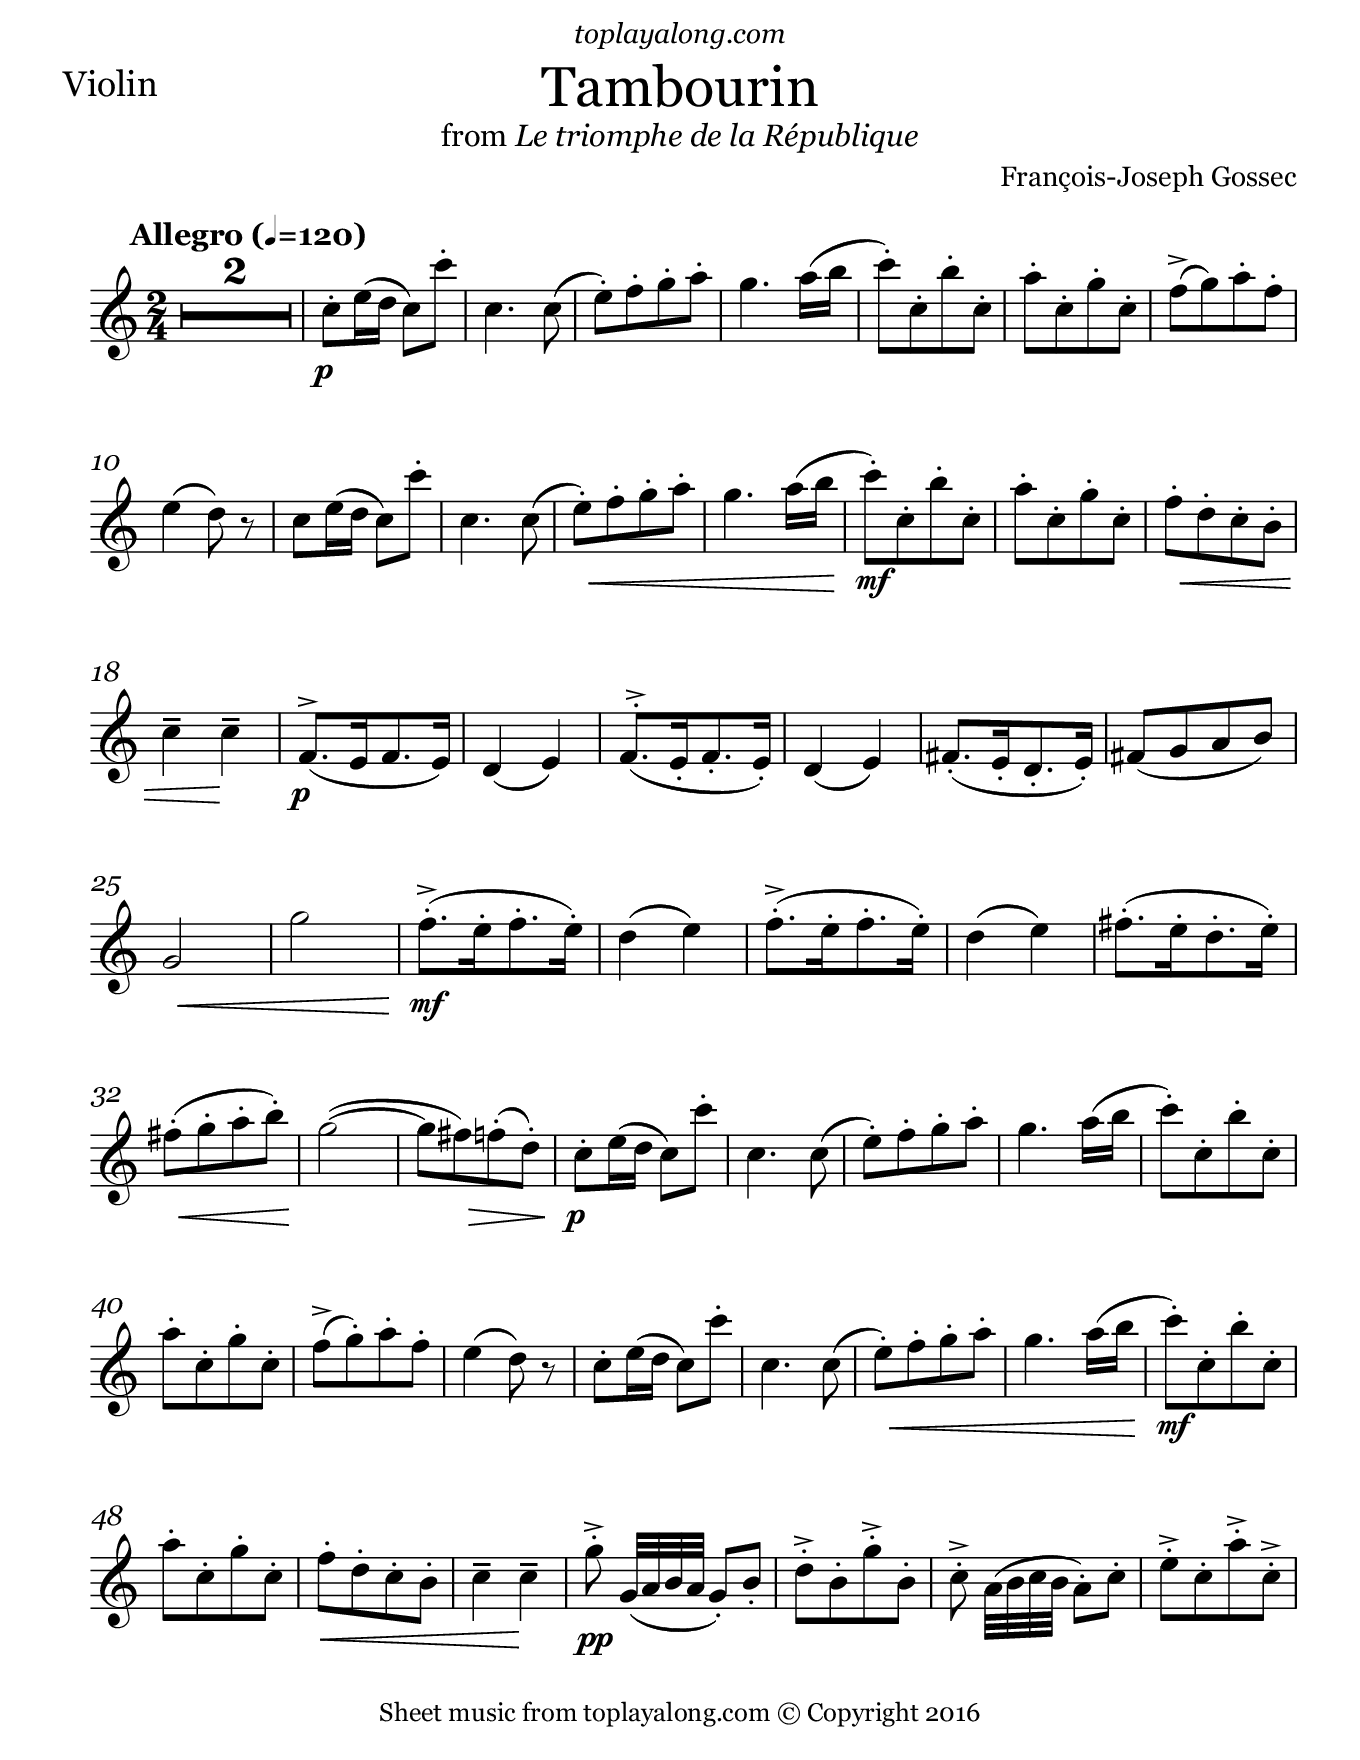 Tambourin by Gossec. Sheet music for Violin, page 1.